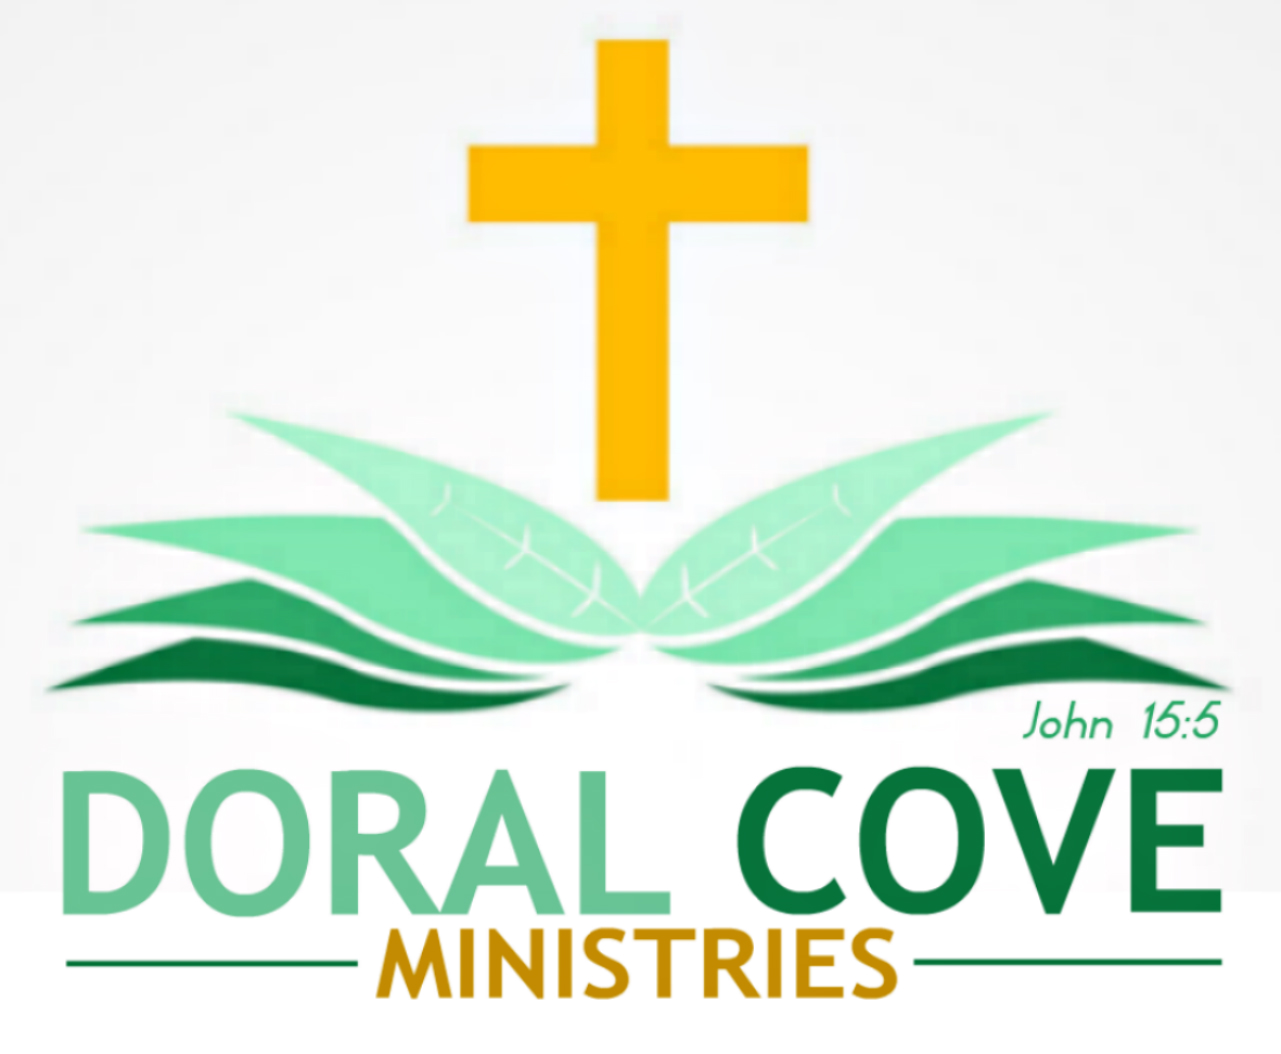 Logo of Doral Cove Ministries